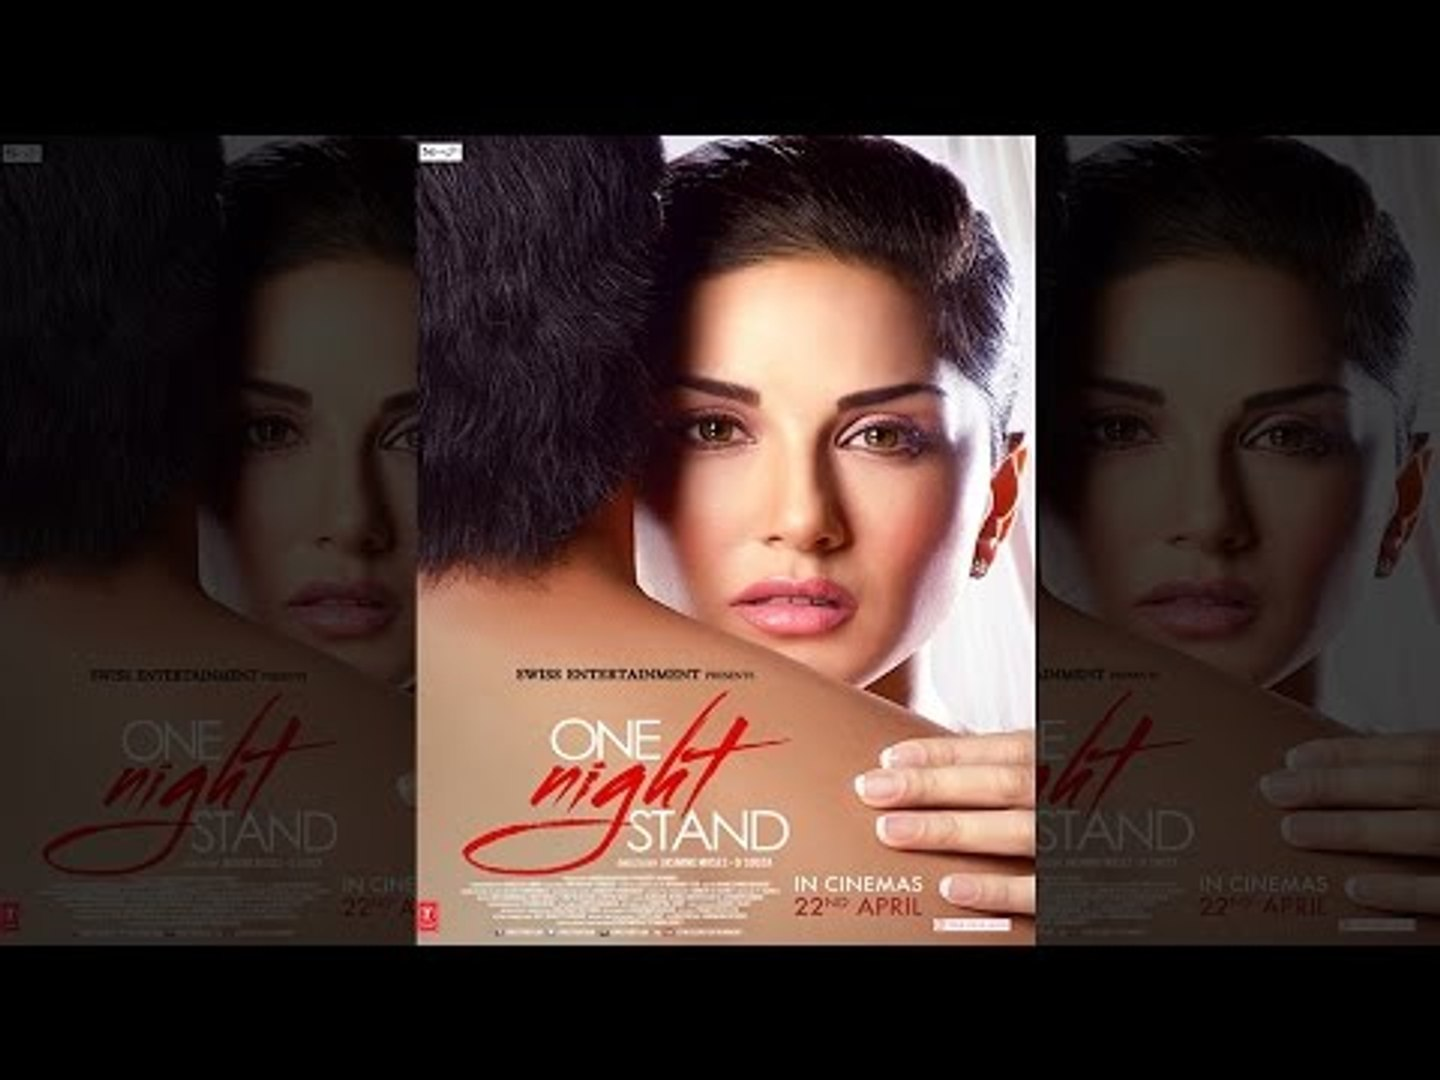 one night stands website